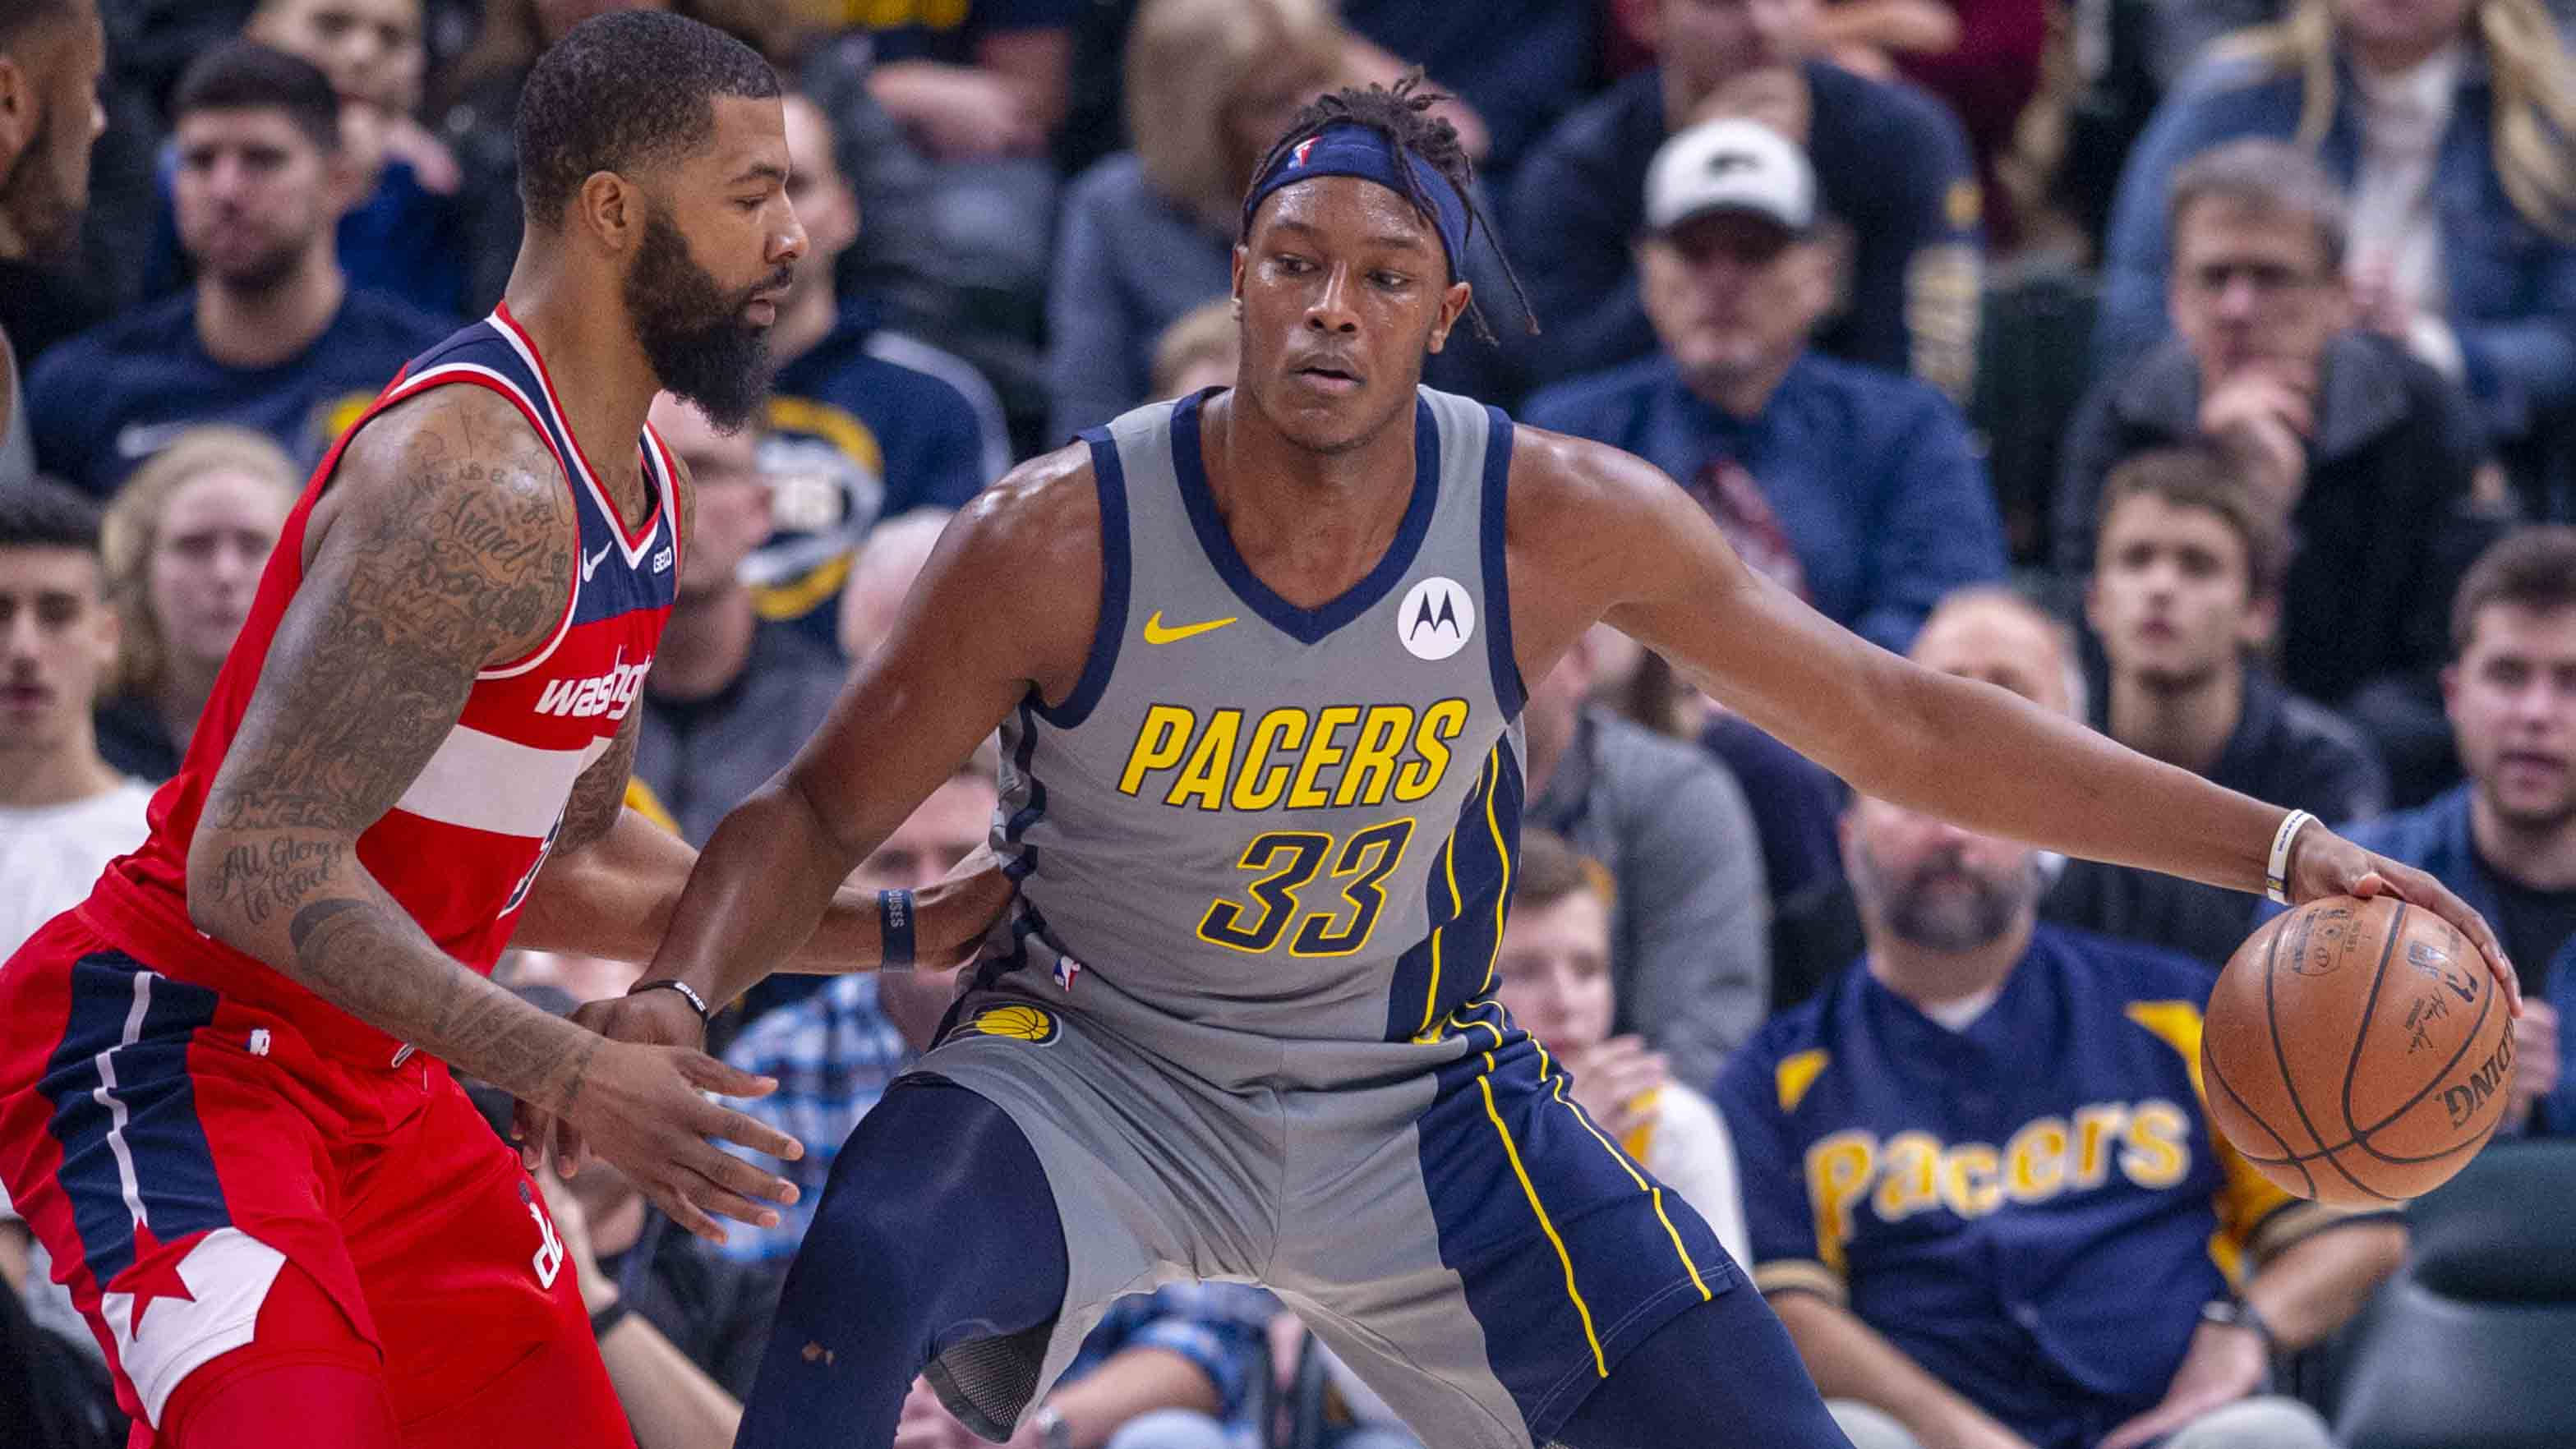 Turner leads the charge as Pacers wear down Wizards for 105-89 win